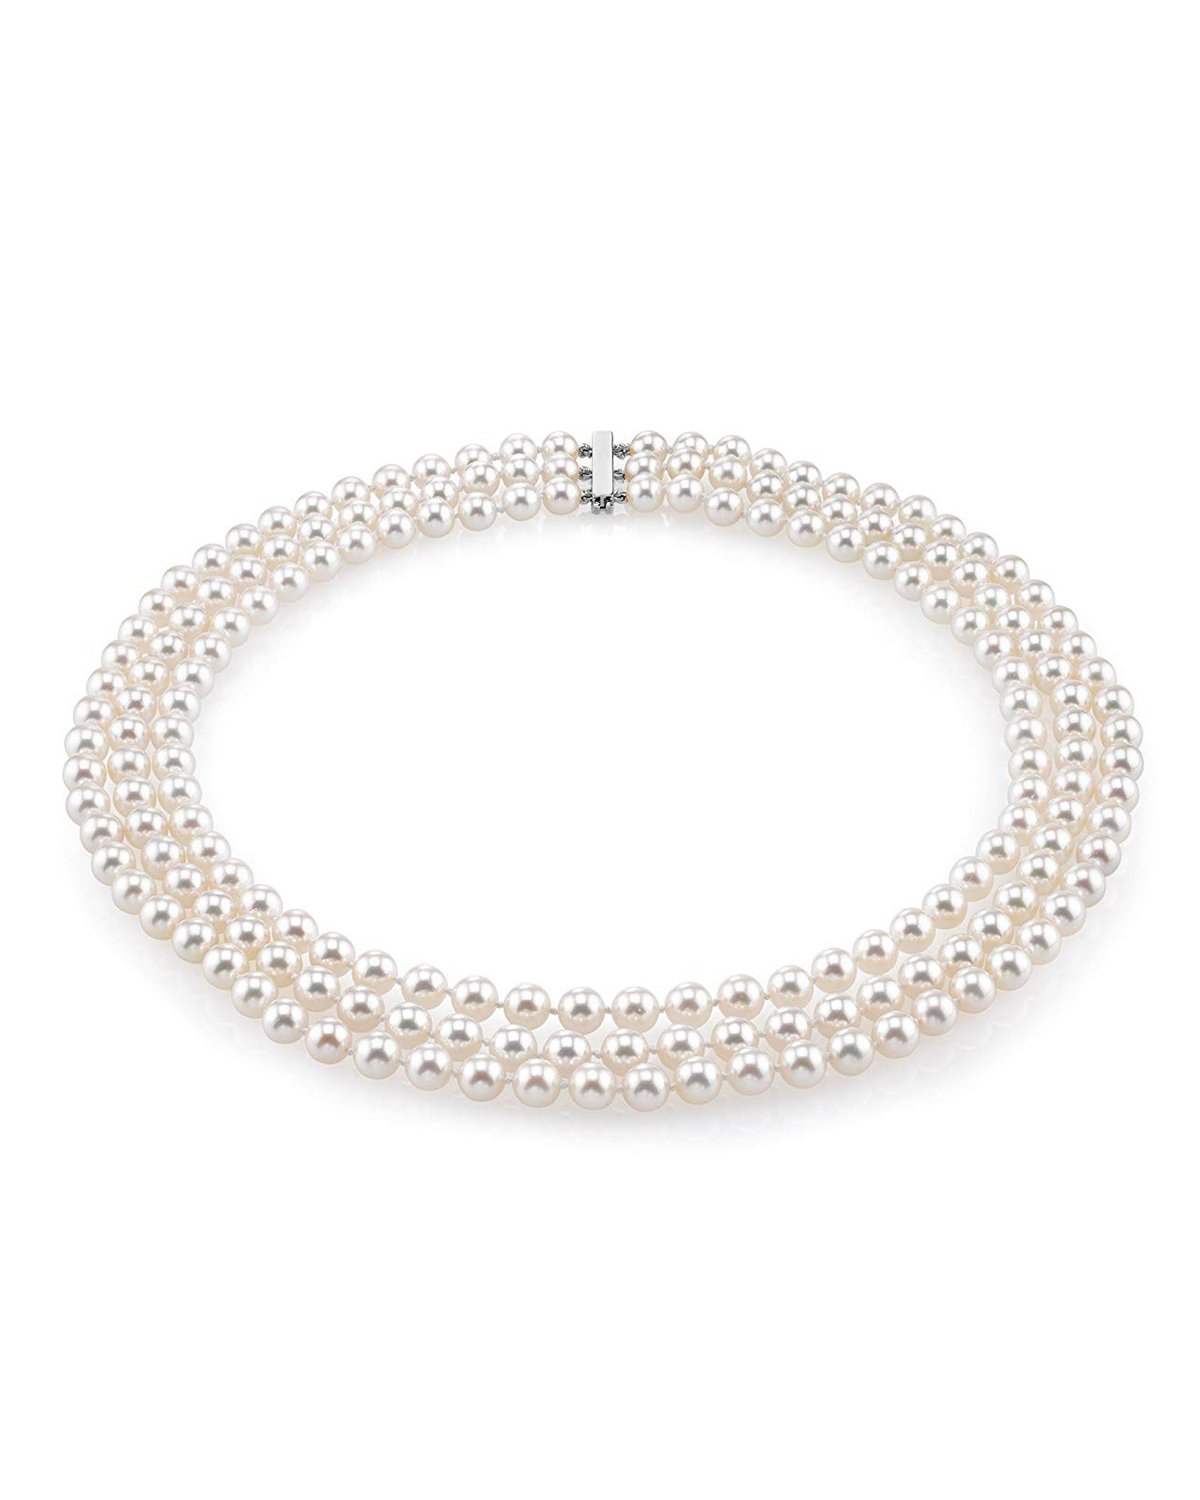 ea68922fd75e7 Triple Strand White Freshwater Pearl Necklace